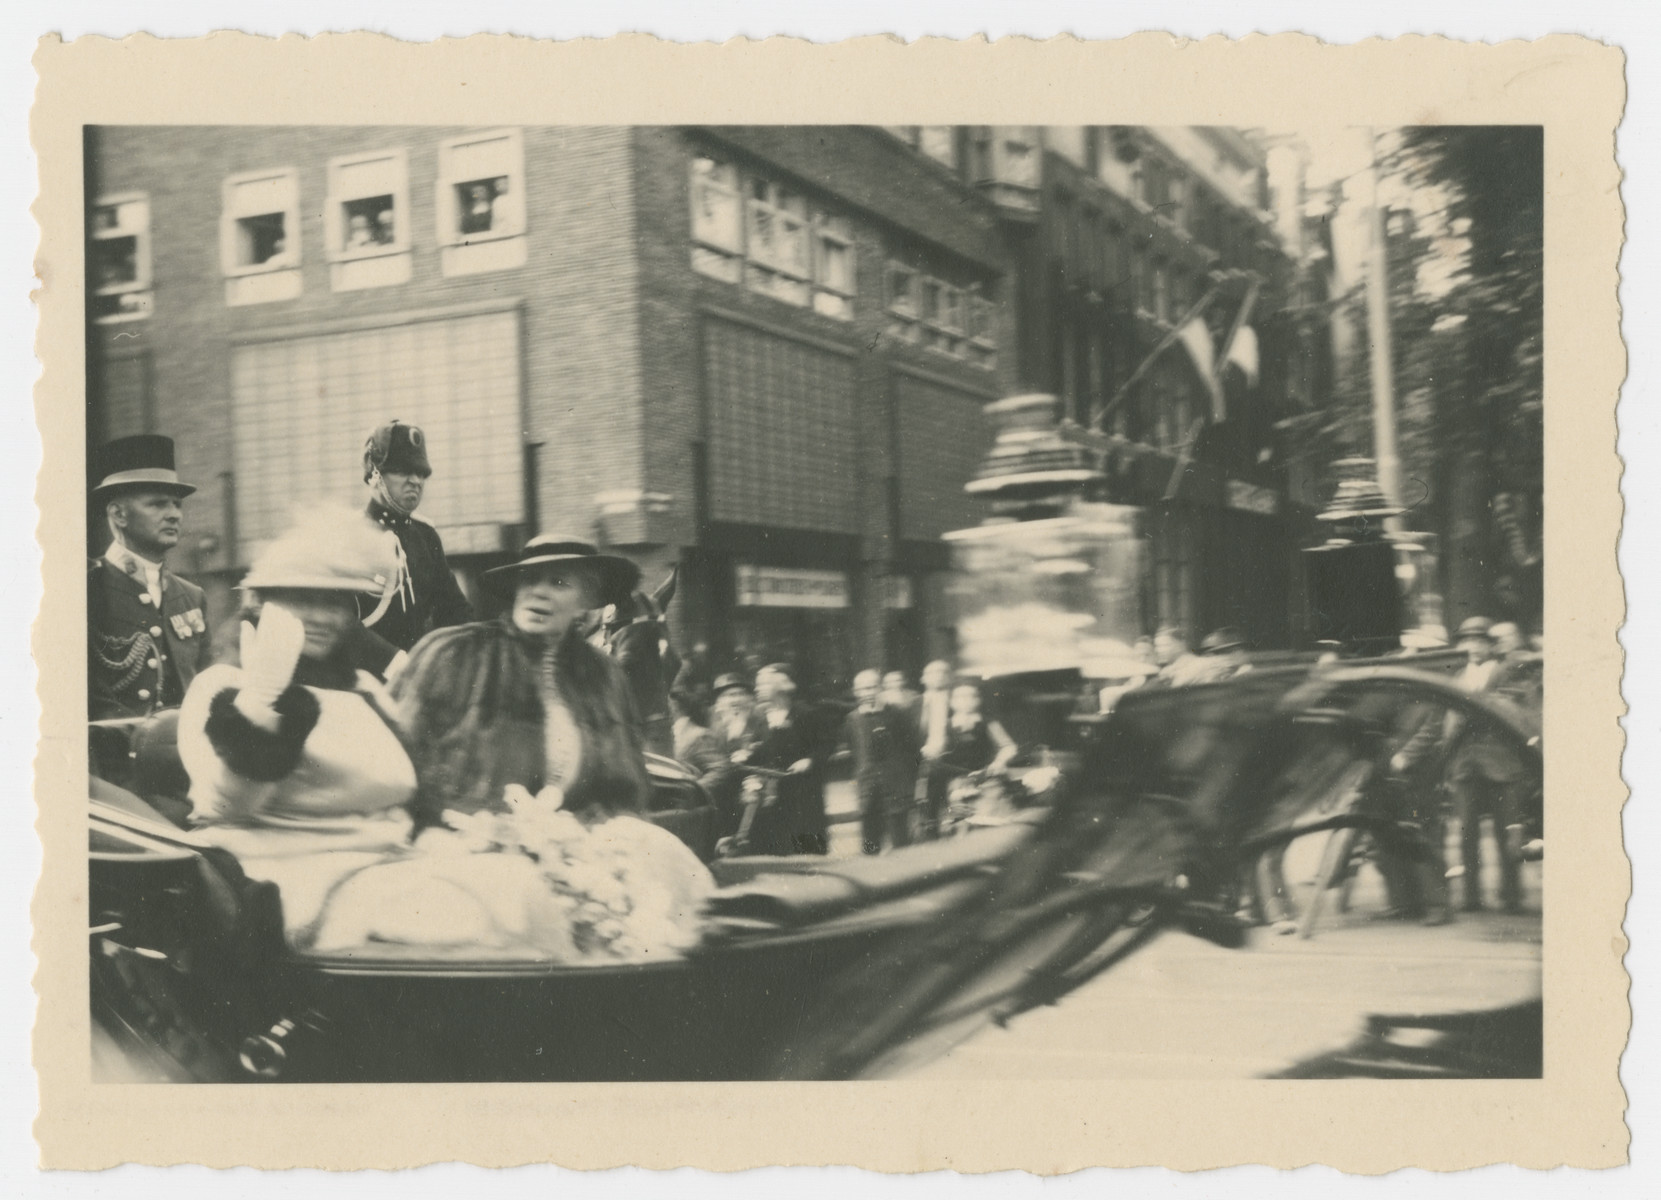 Queen Wilhelmina rides in an open automobile during a celebration marking her 40th year on the throne.